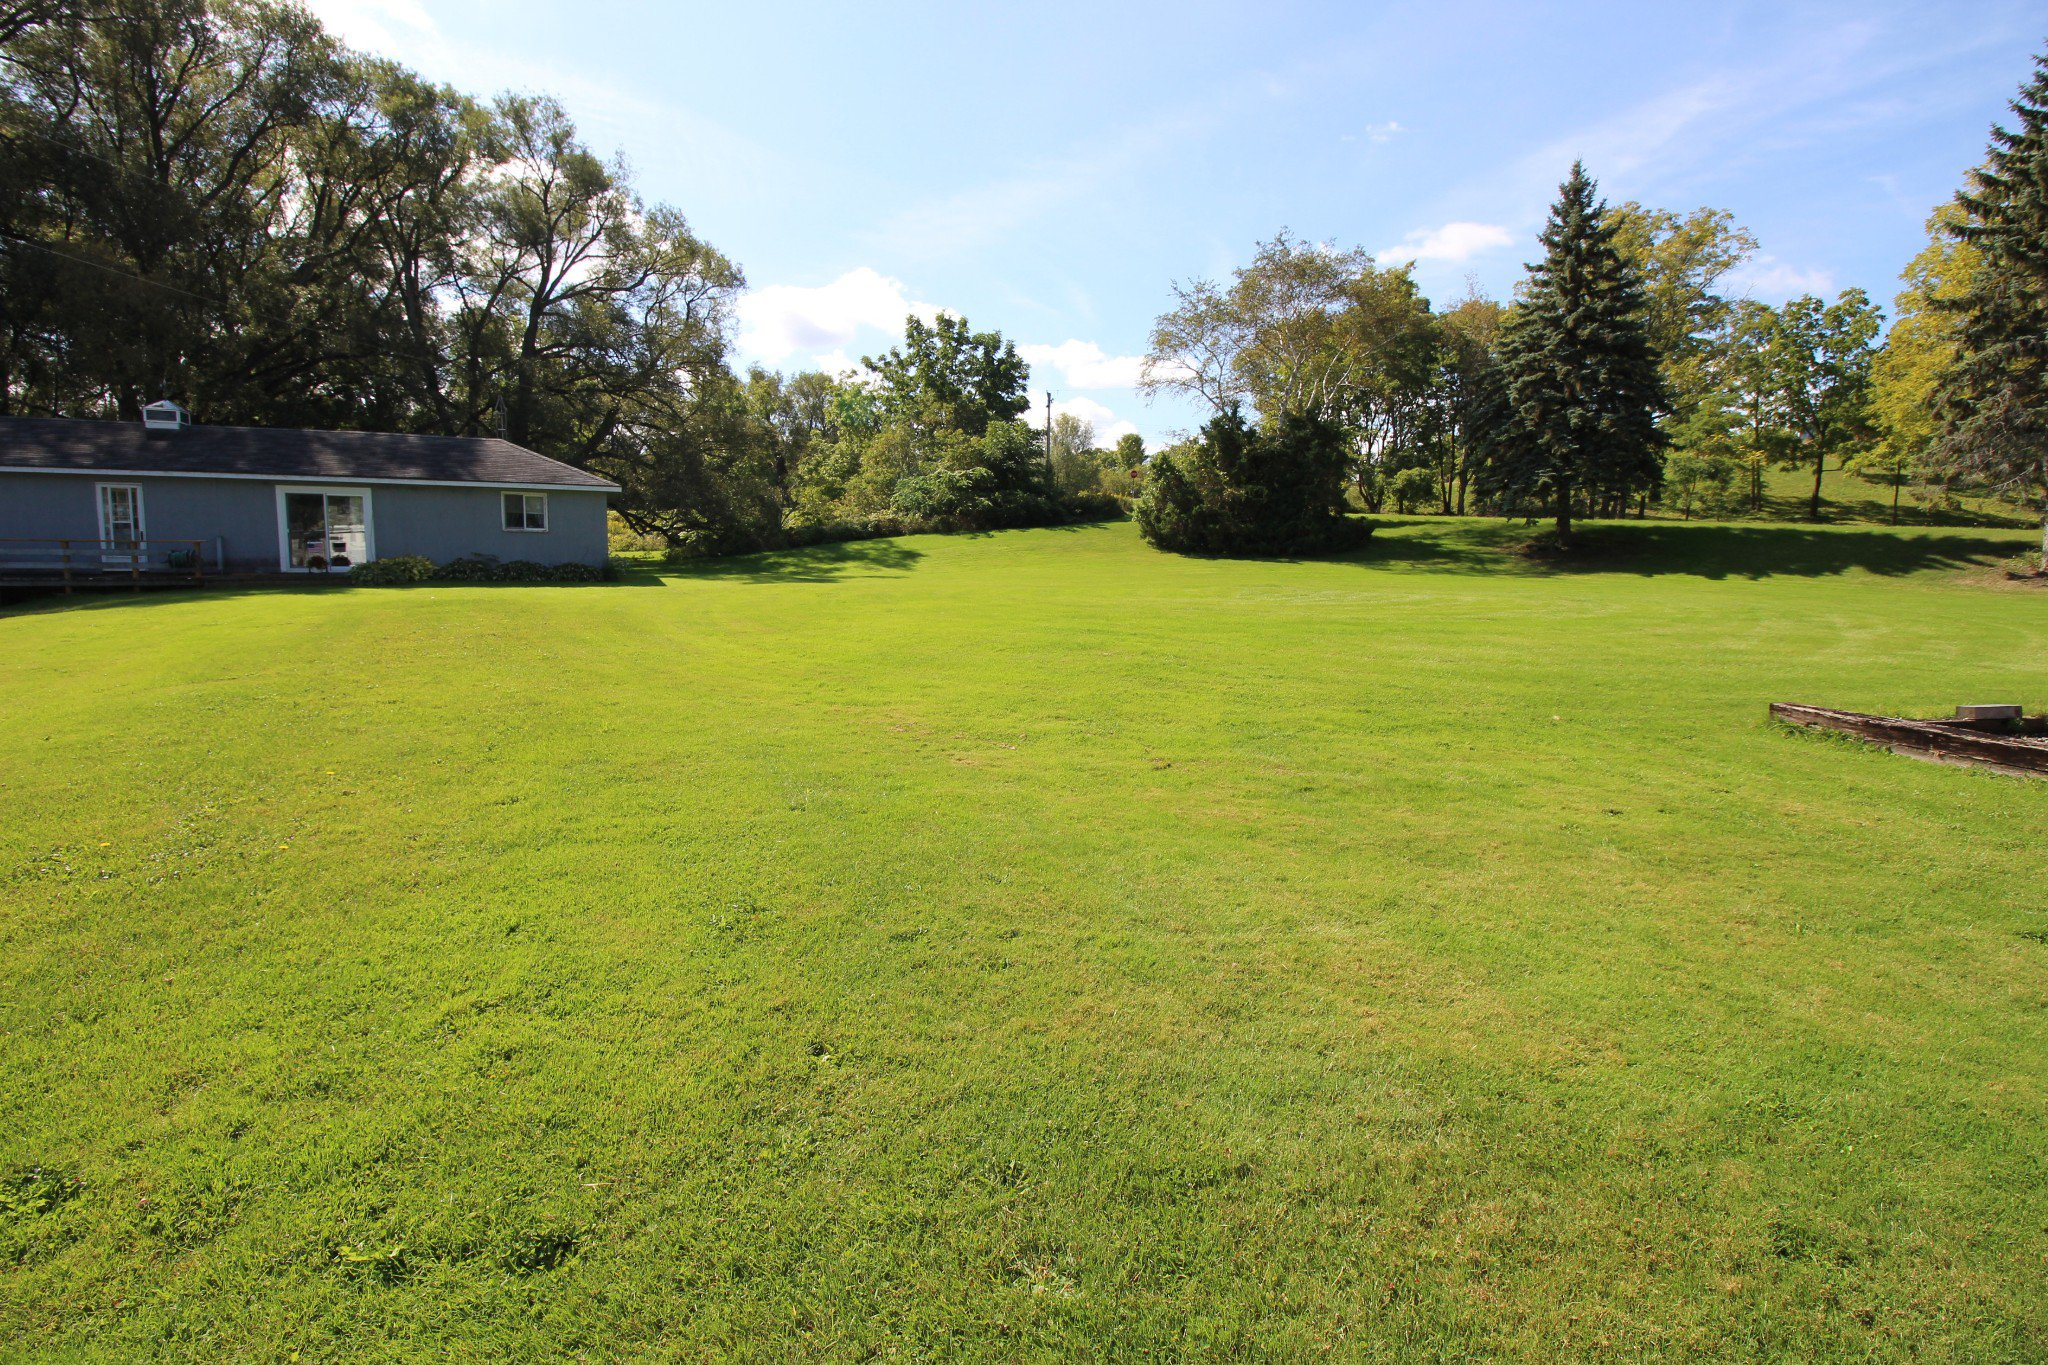 Photo 27: Photos: 6010 Rice Lake Scenic Drive in Harwood: Other for sale : MLS®# 223405